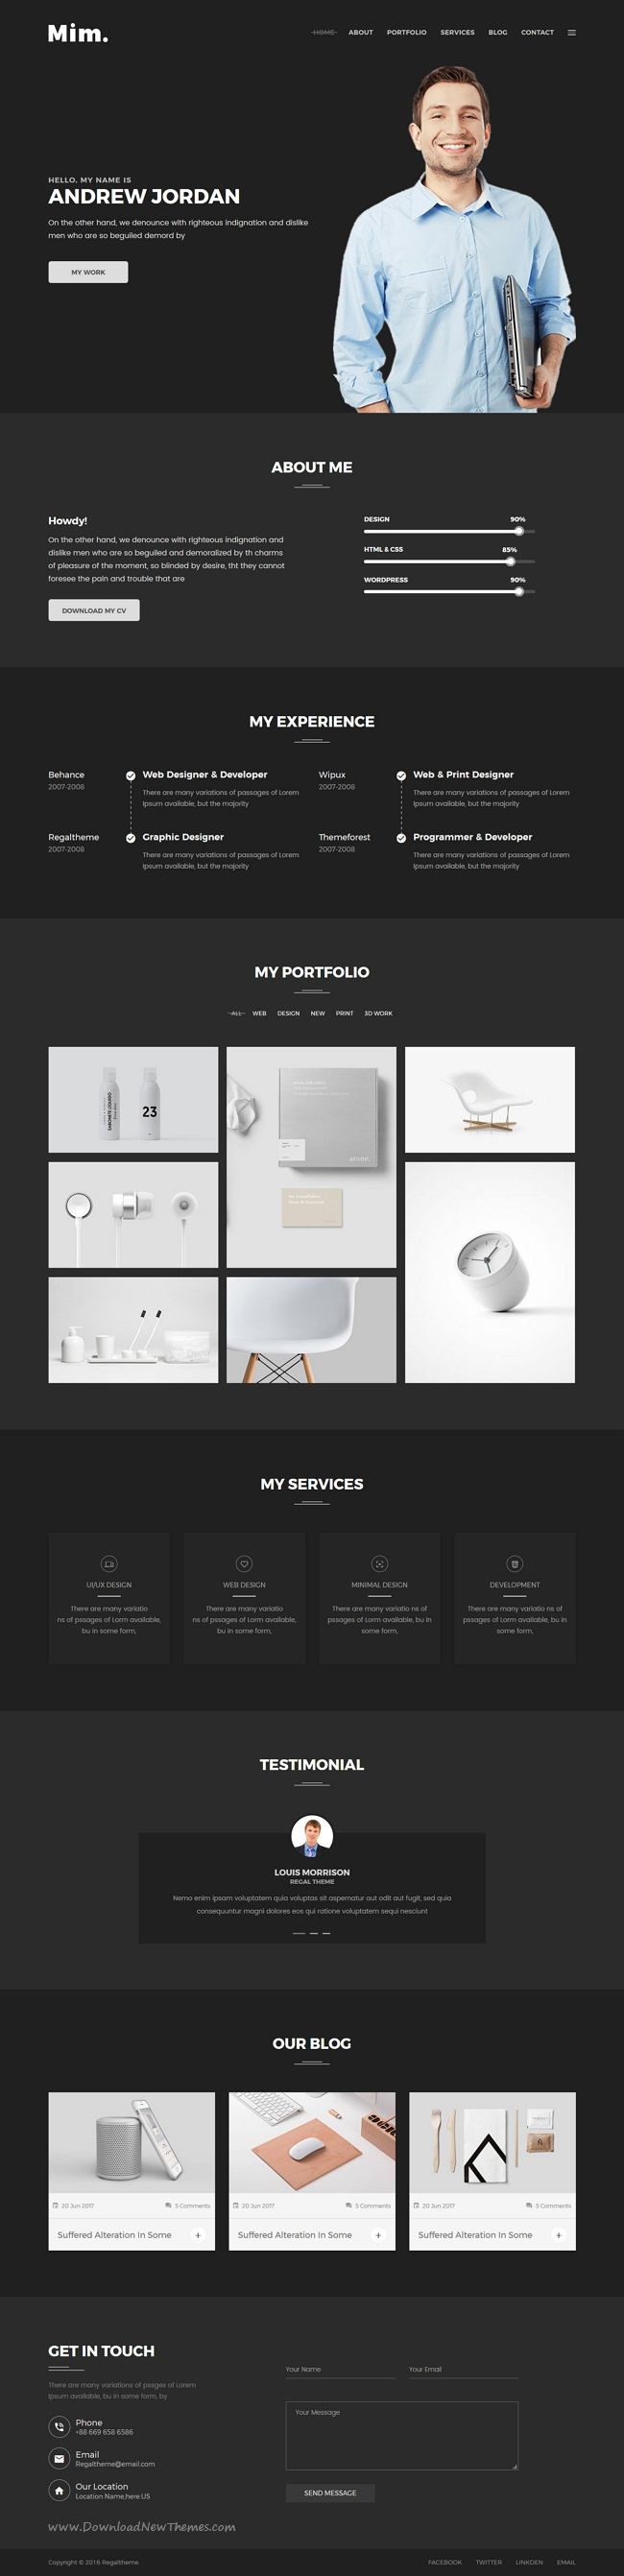 showcase website with light and dark